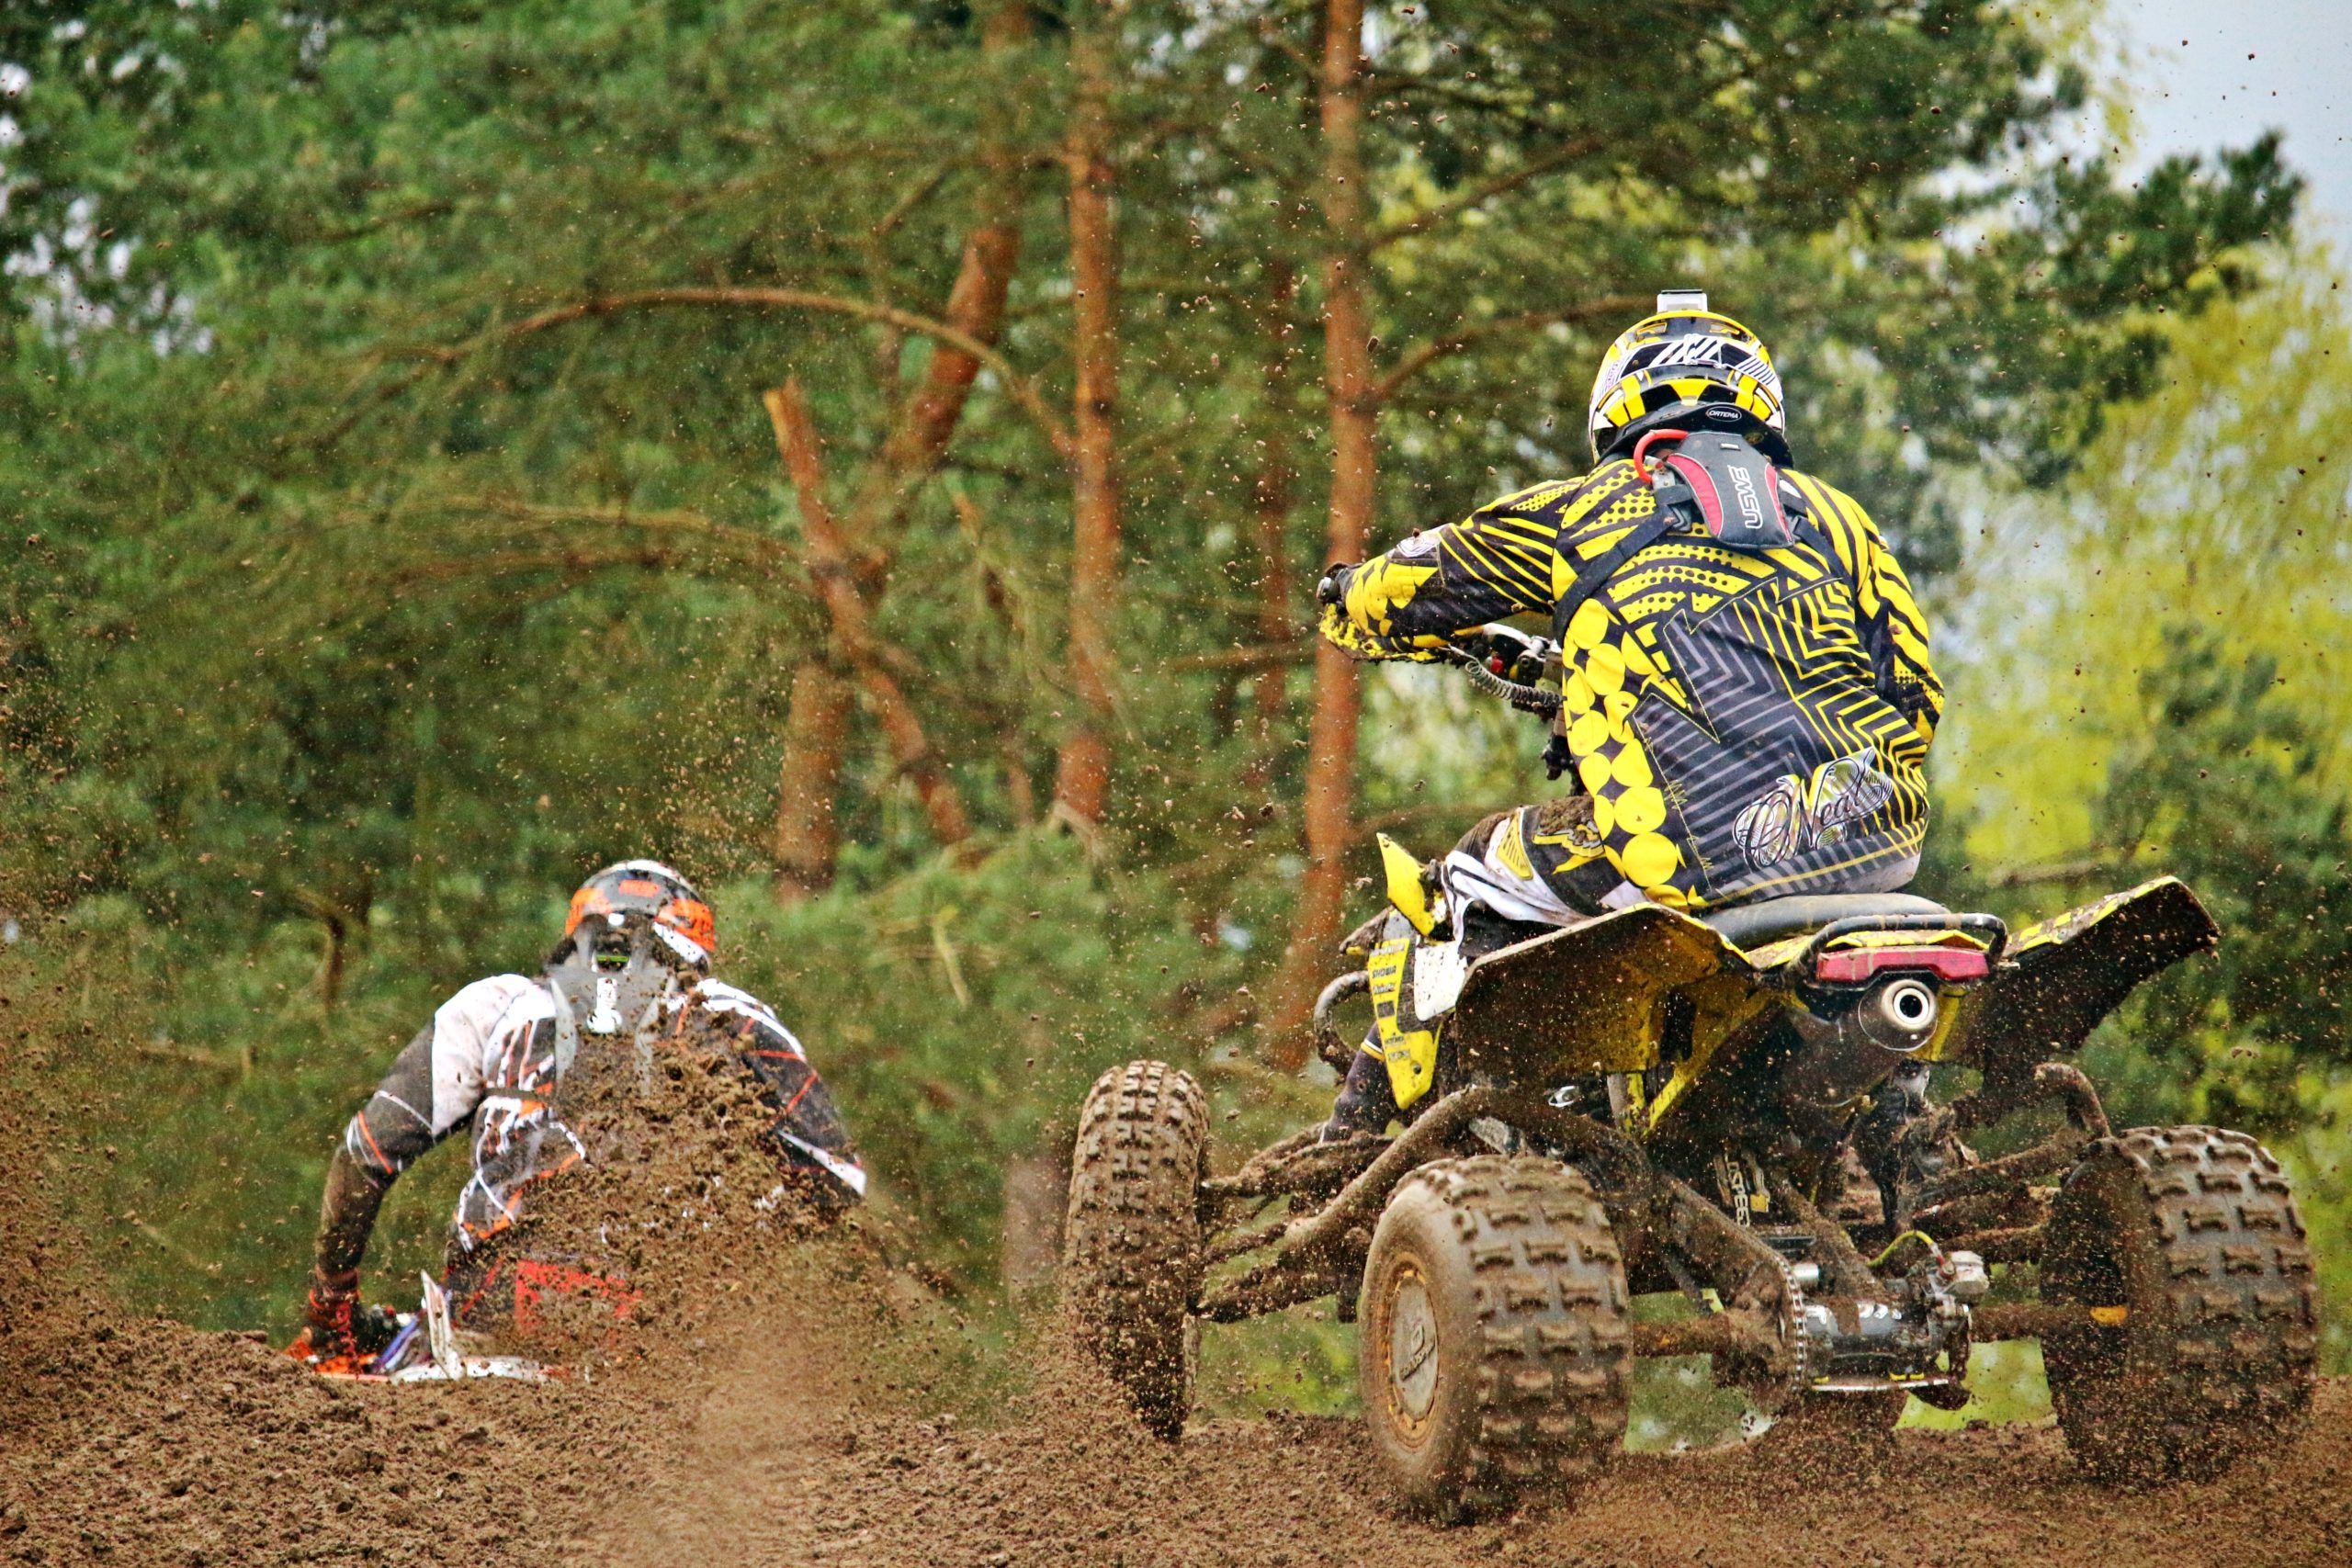 What to do after an ATV accident?